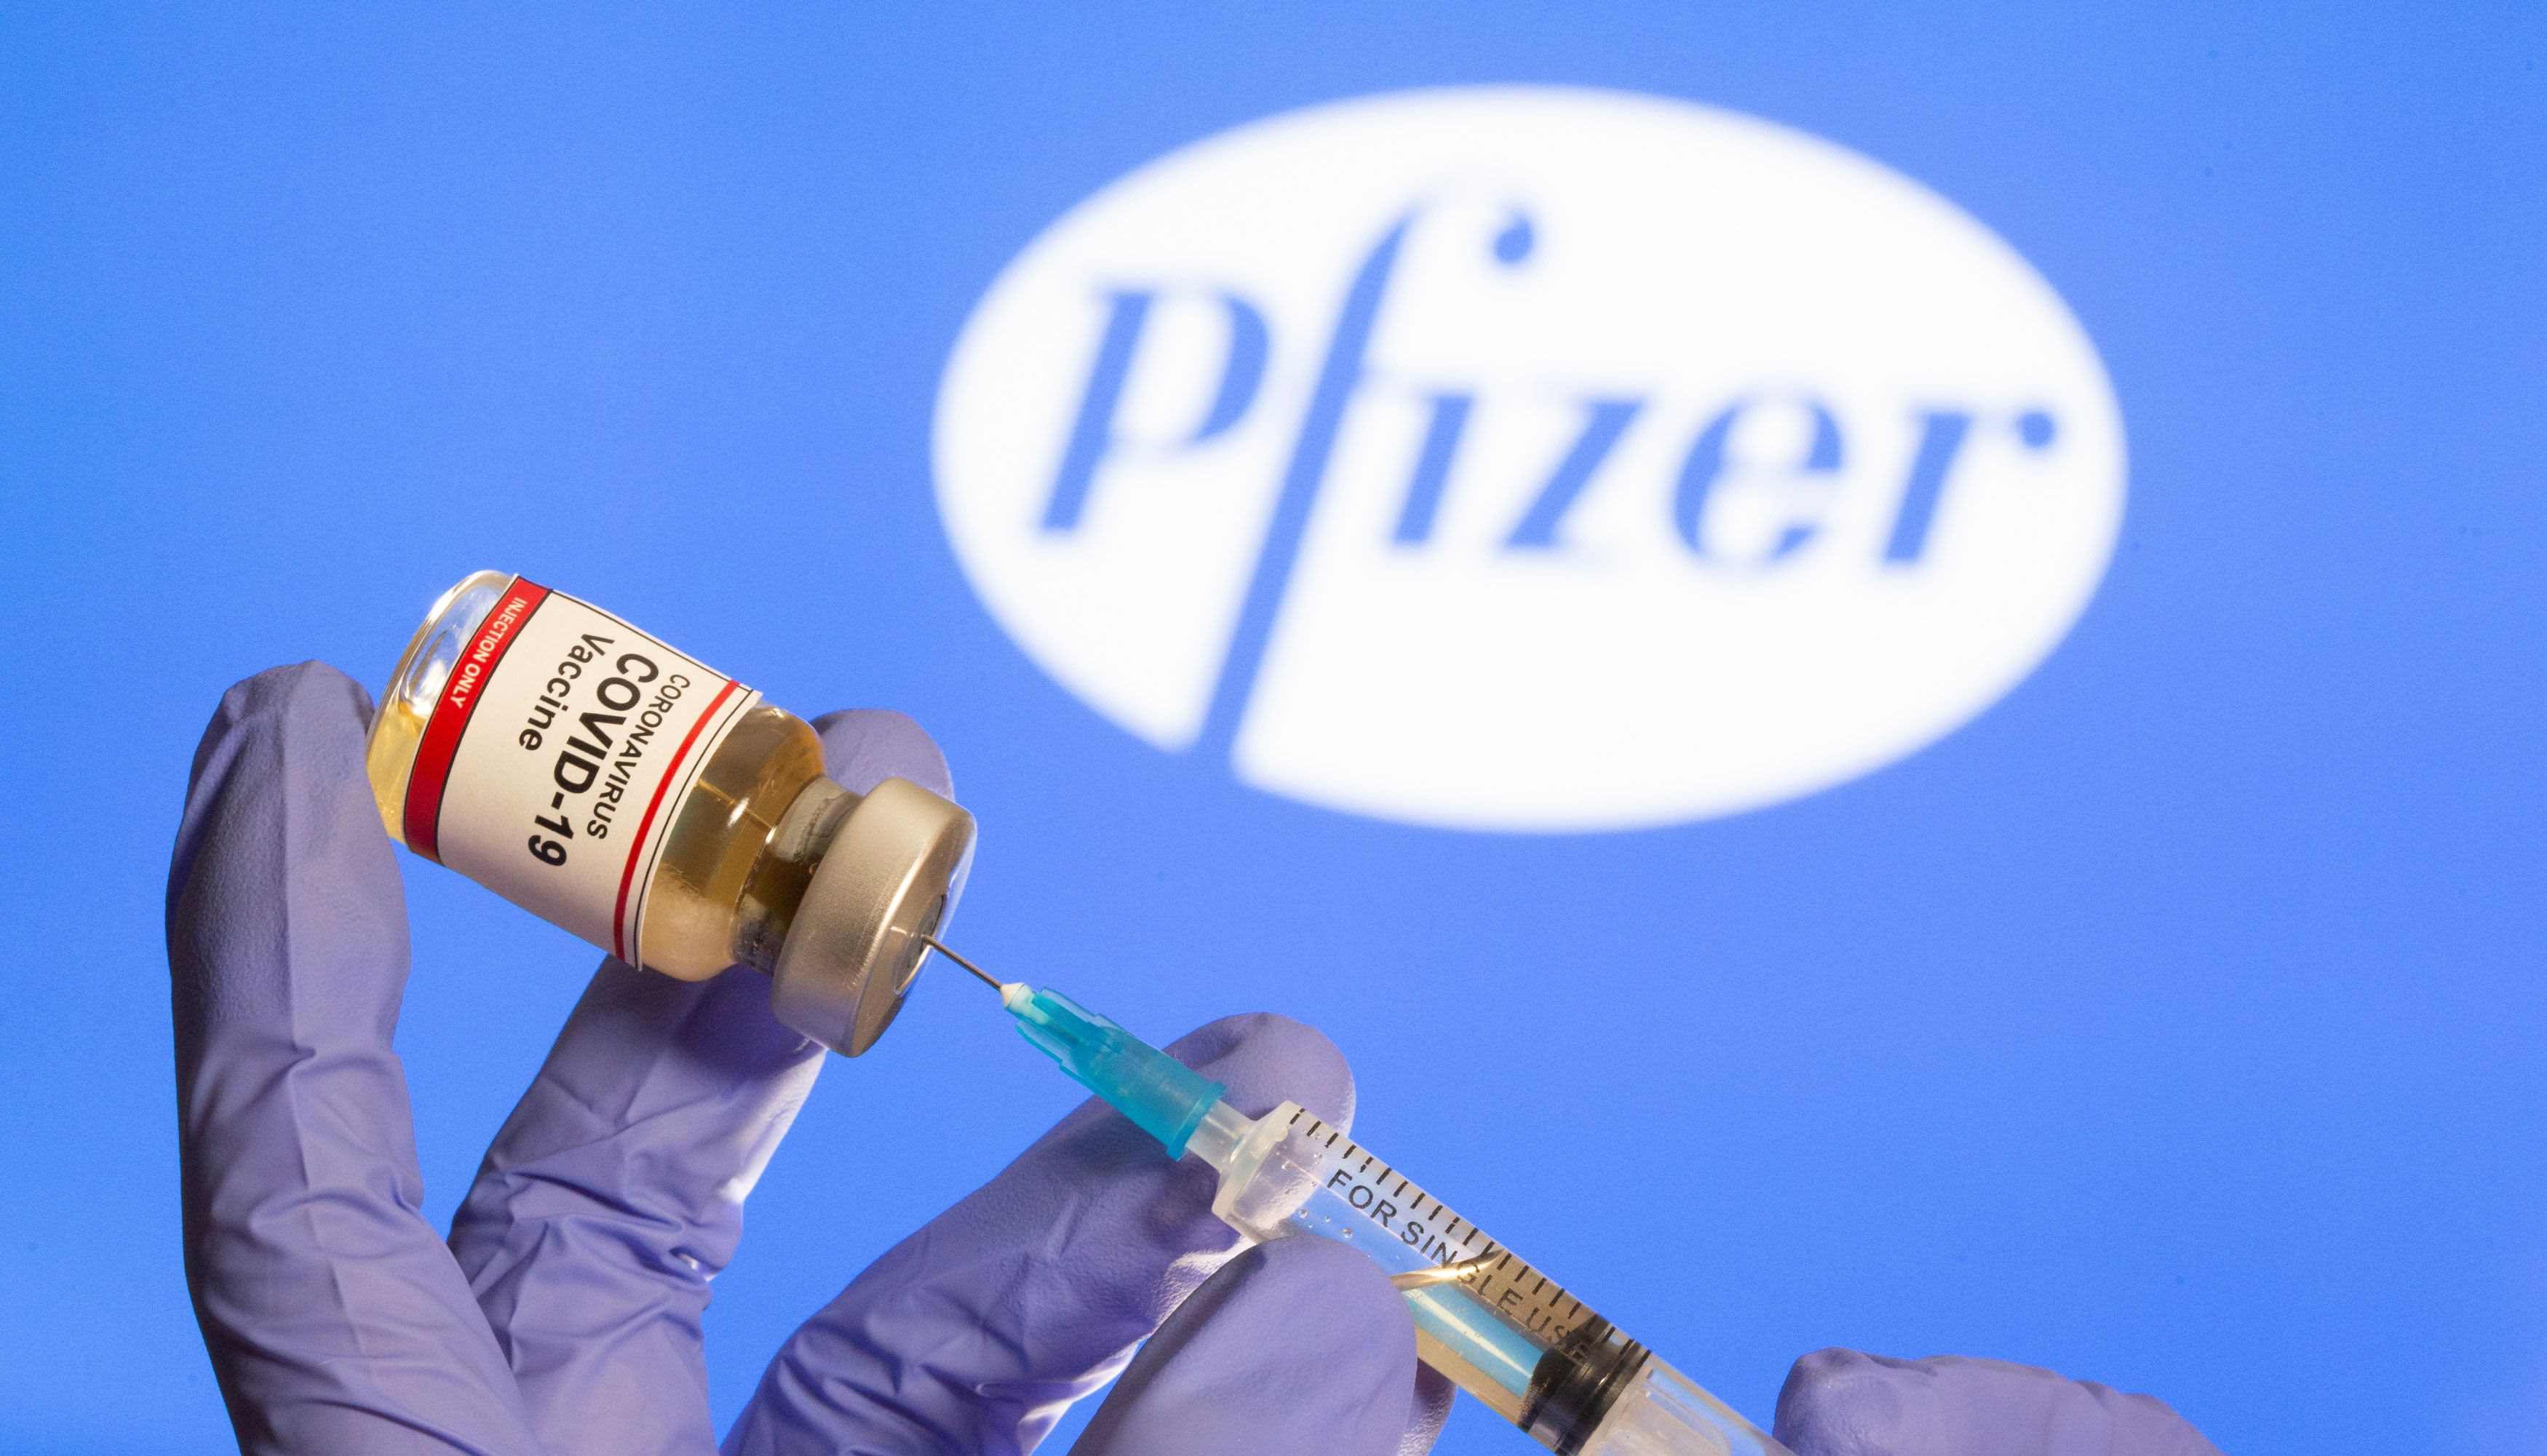 Pfizer's Covid vaccine approved by FDA for emergency use